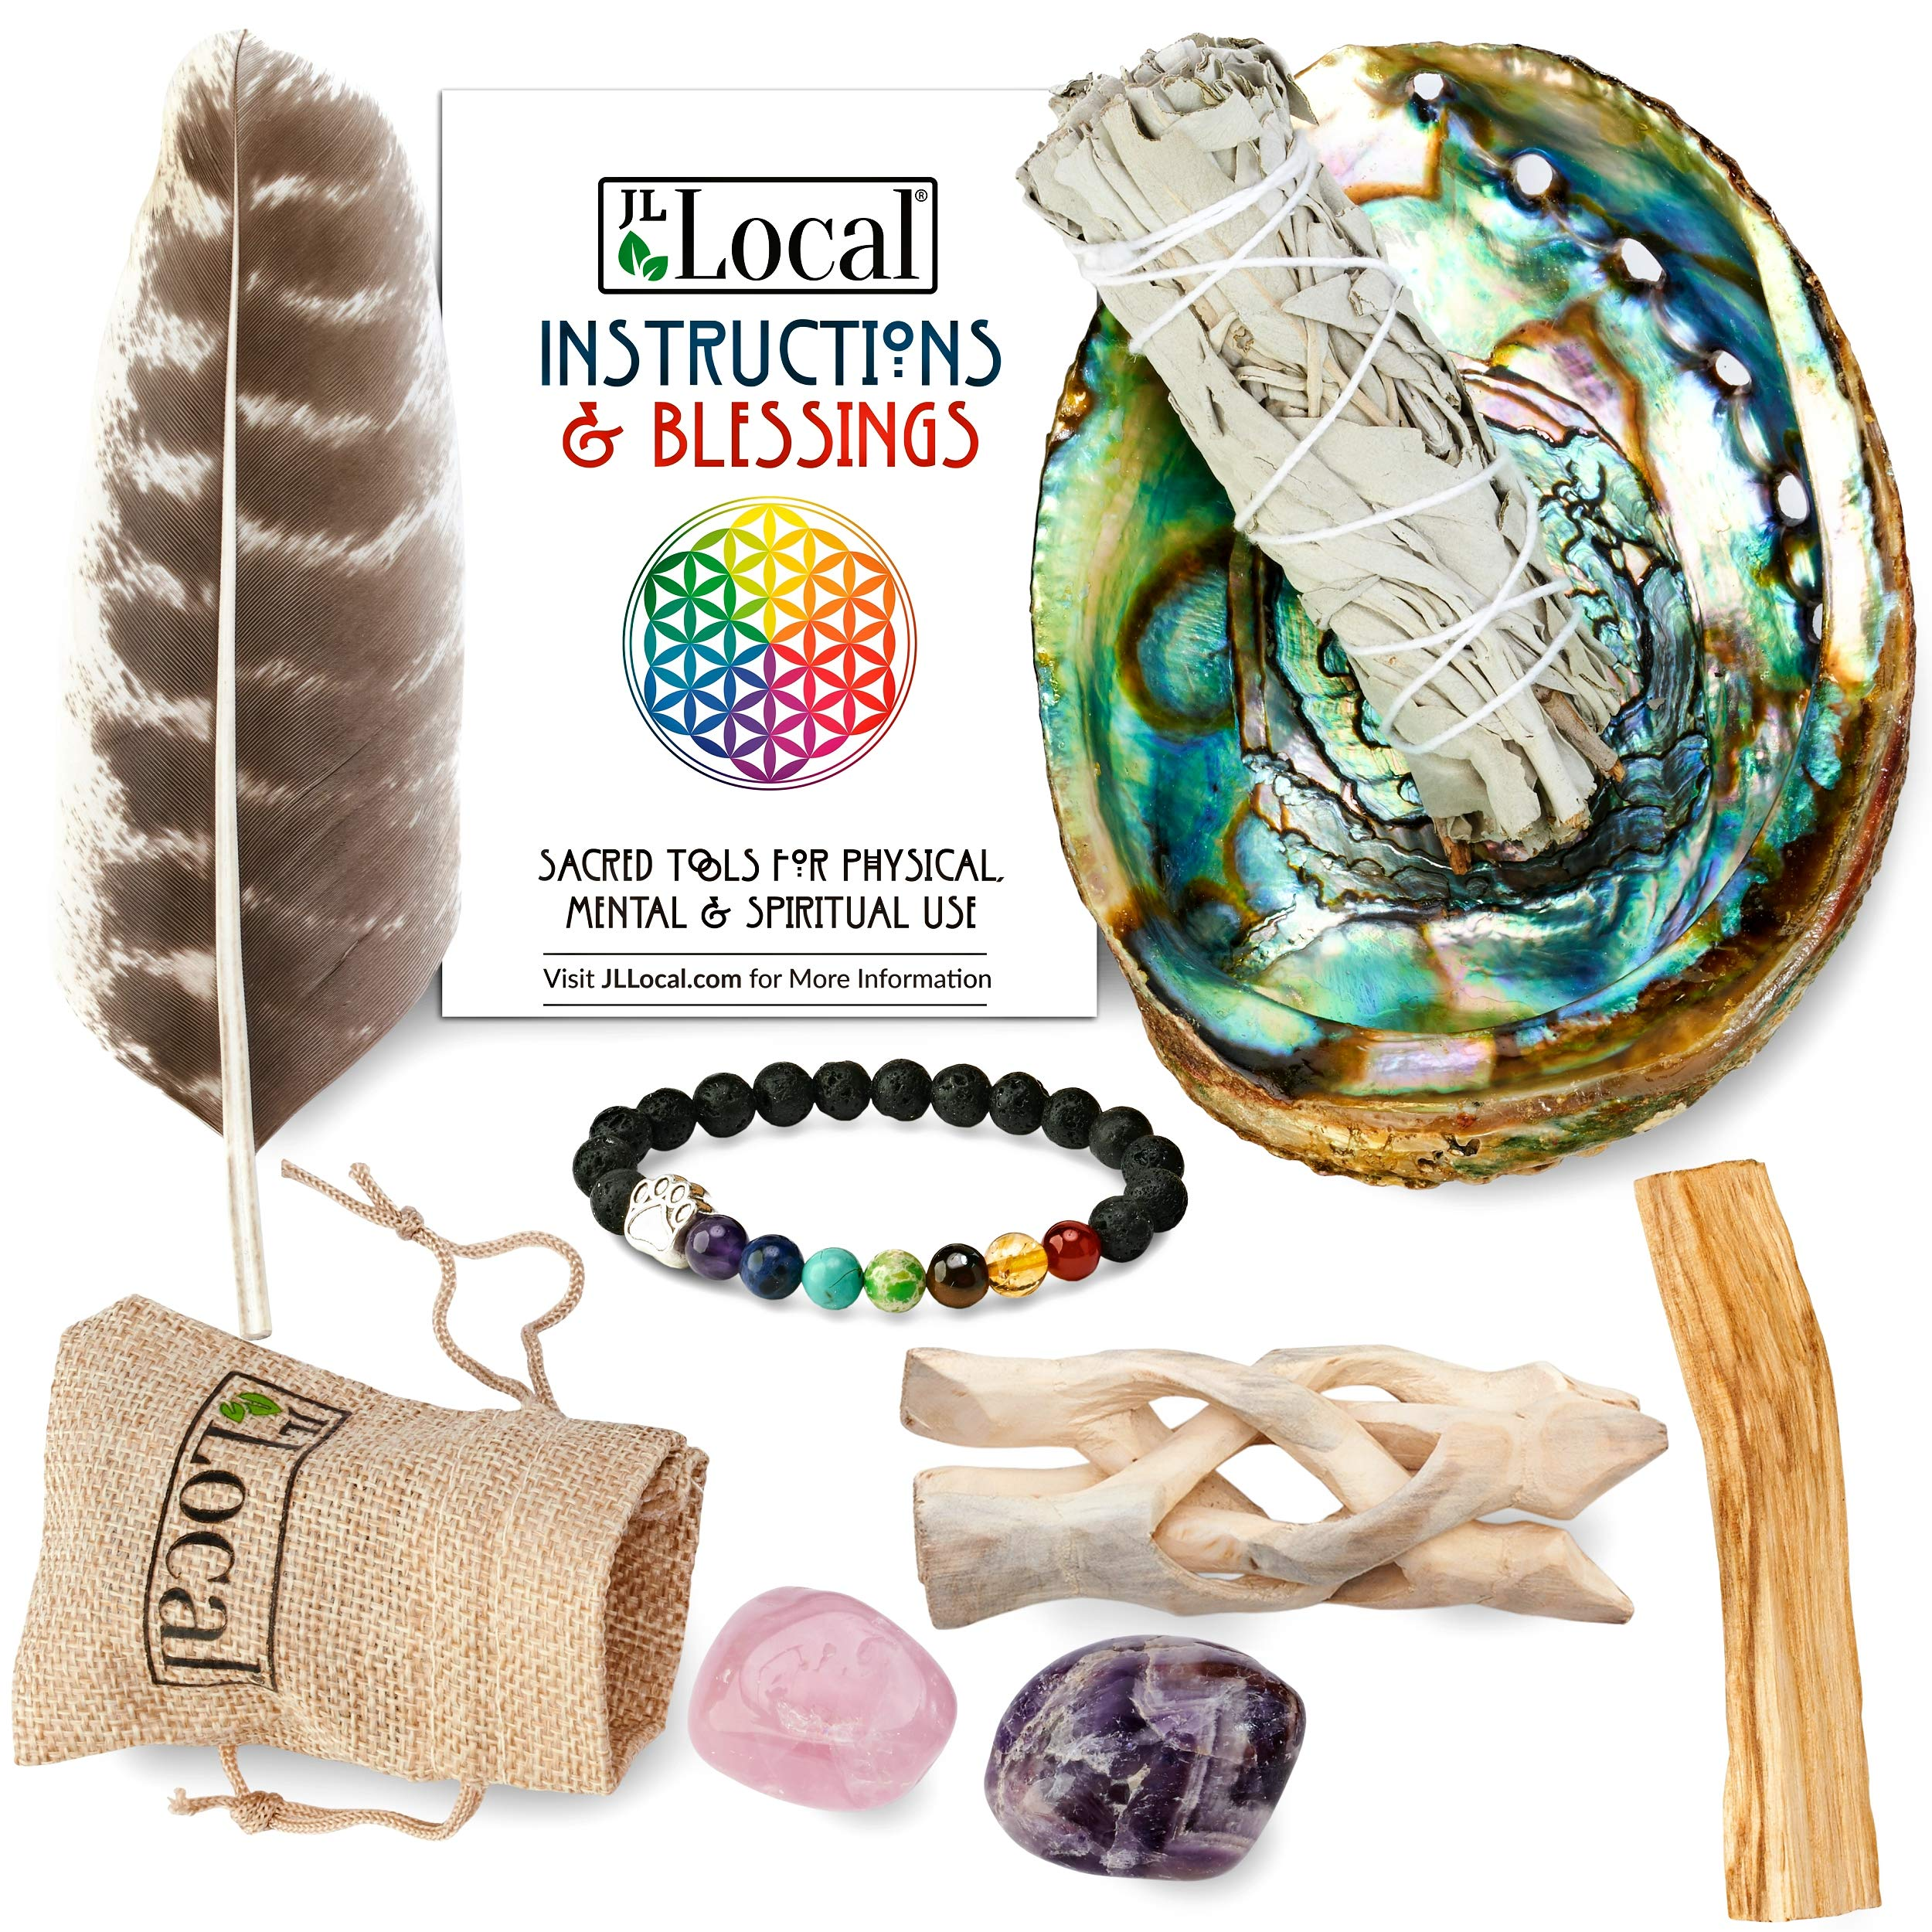 JL Local Chakra Smudging Kit - 10 Items Including White Sage Smudge Sticks, Palo Santo, Amethyst, Rose Quartz, Abalone Shell, Stand & Gift by JL Local (Image #1)